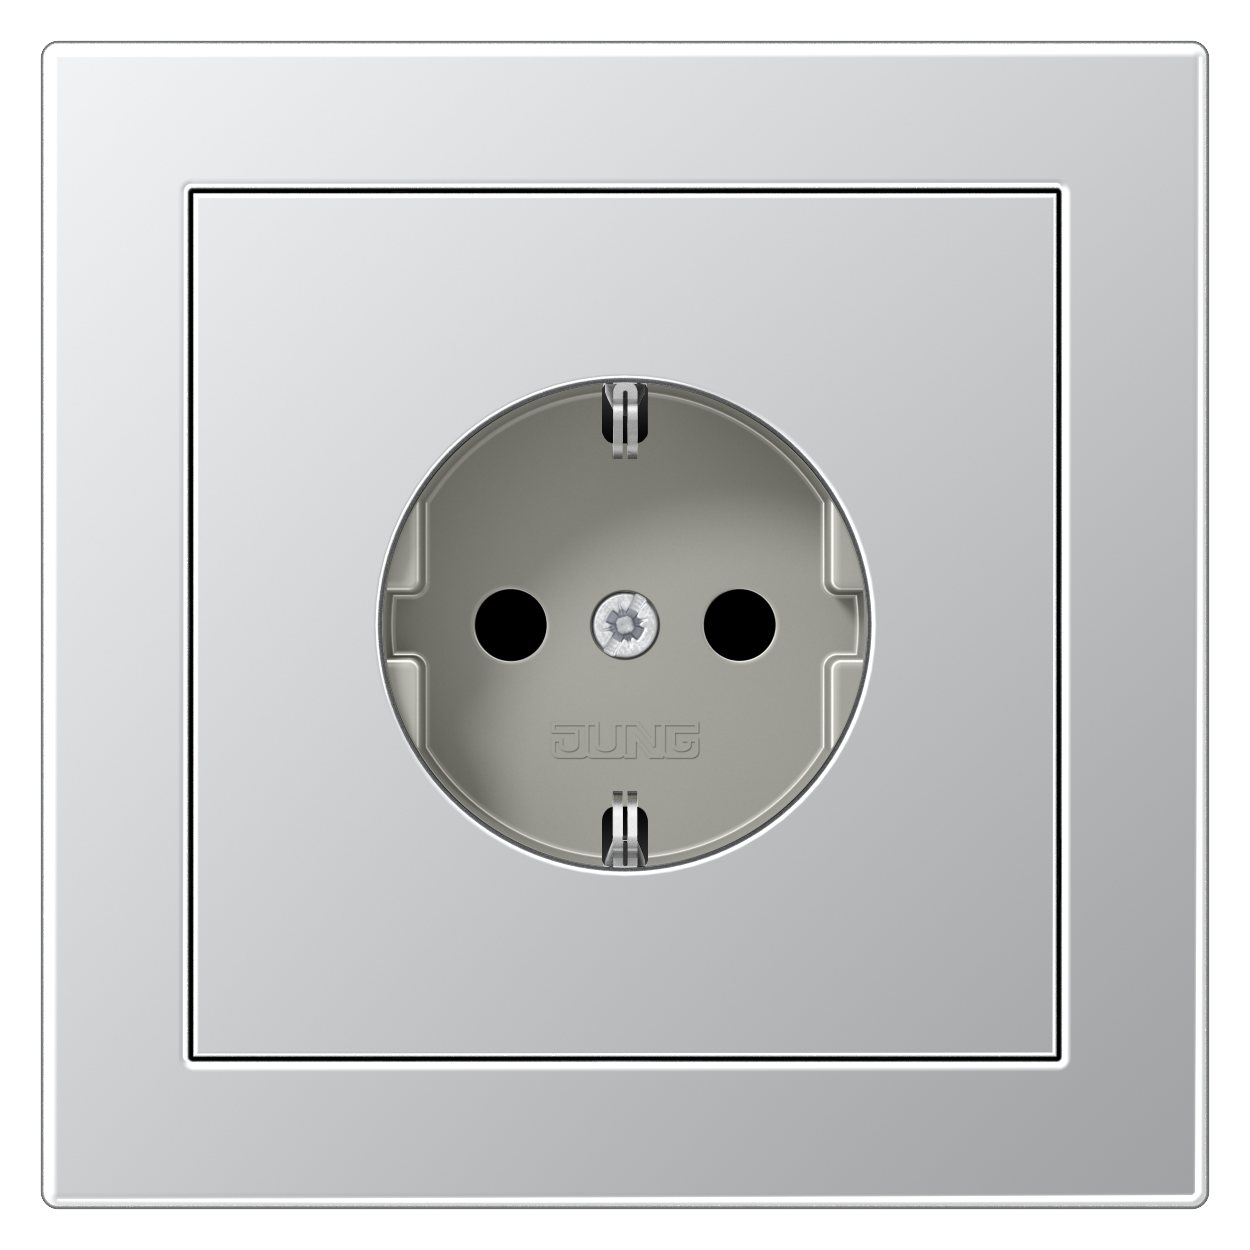 JUNG_LS_Design_aluminium_socket